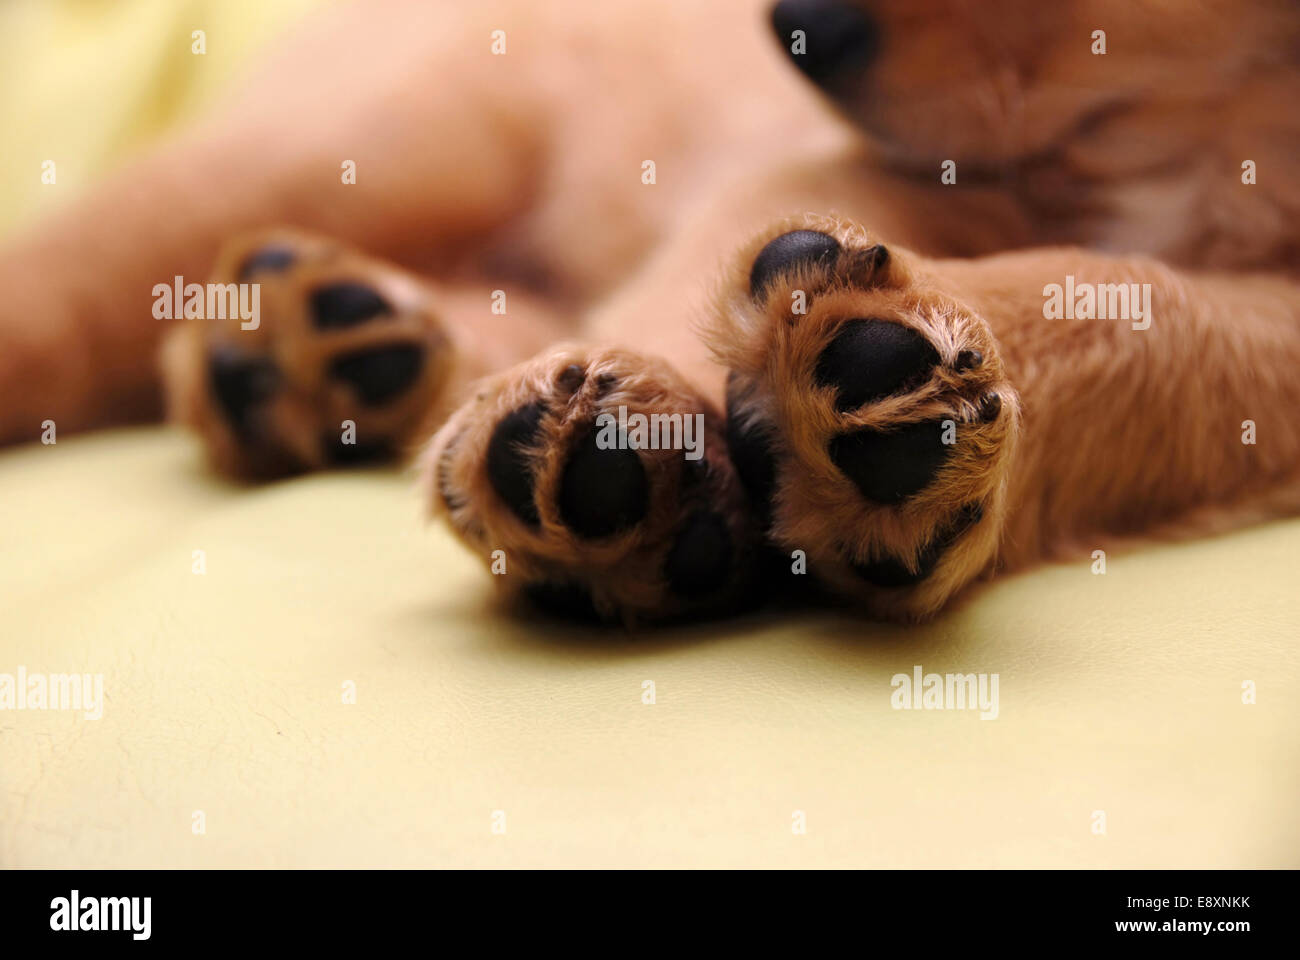 Paws of sleeping puppy - Stock Image